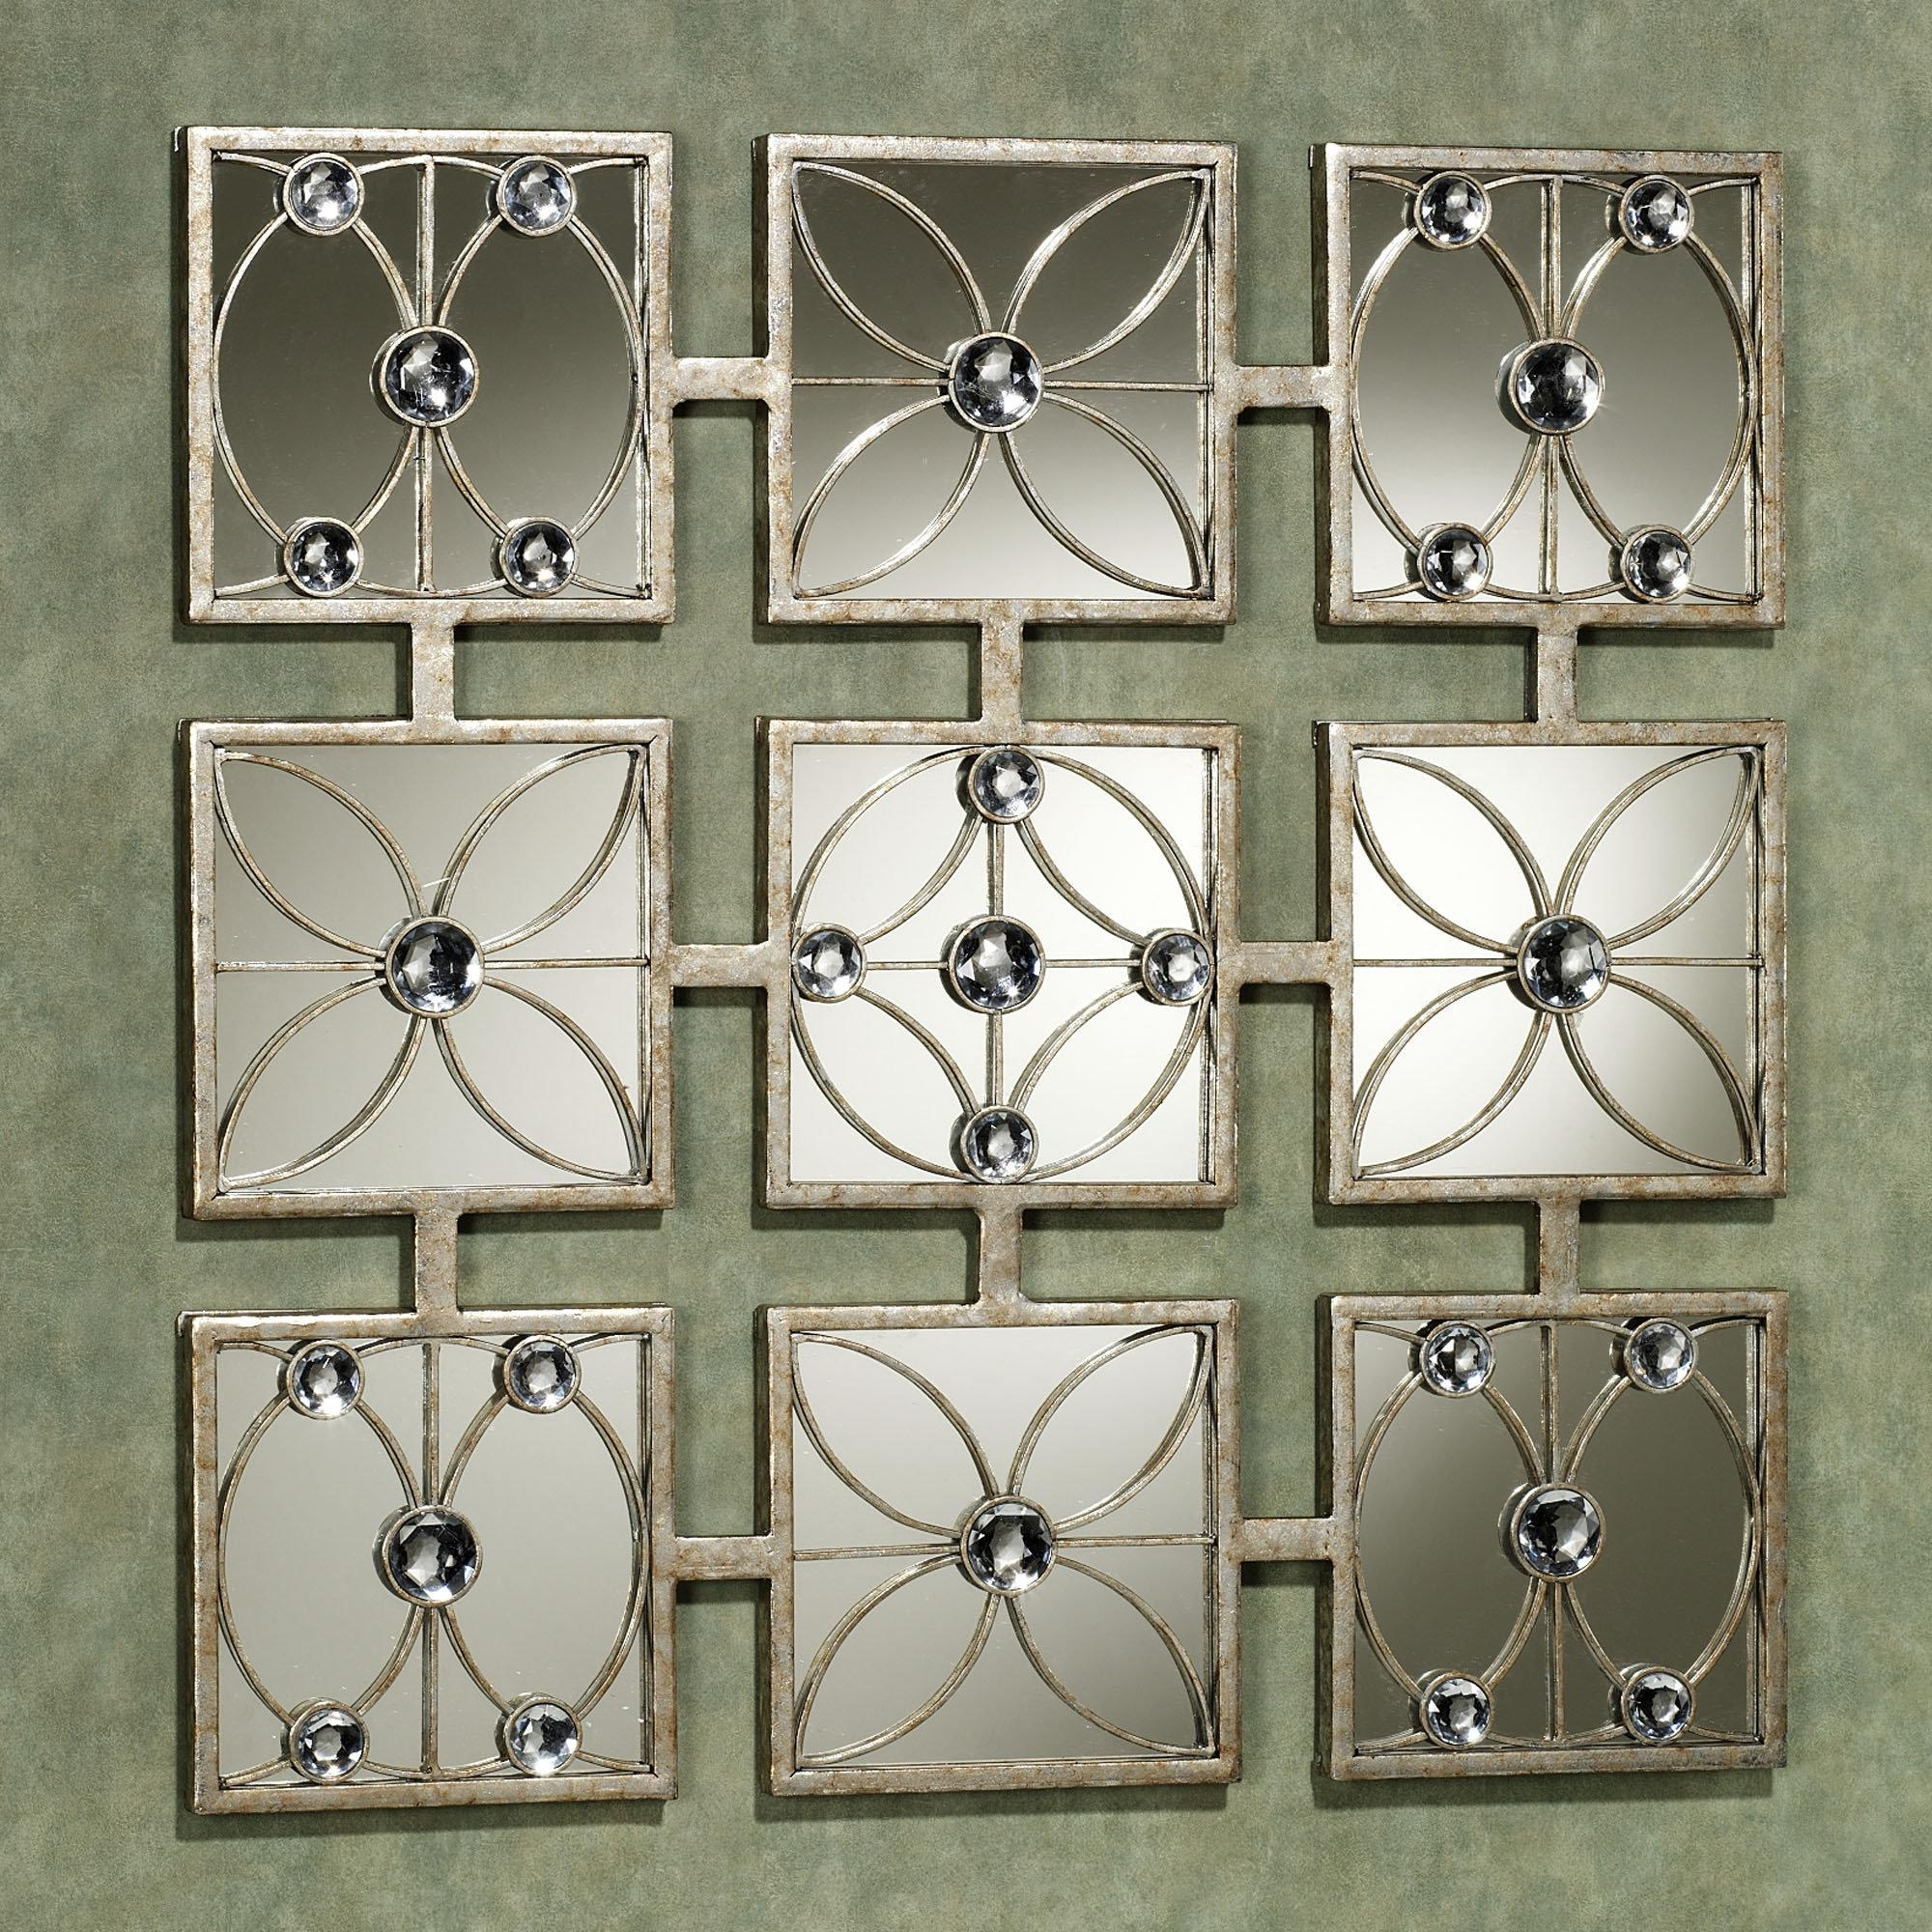 Wall Art Decor: Andalucia Jeweled Mirrored Wall Art Stunning In Matching Wall Art (View 15 of 20)